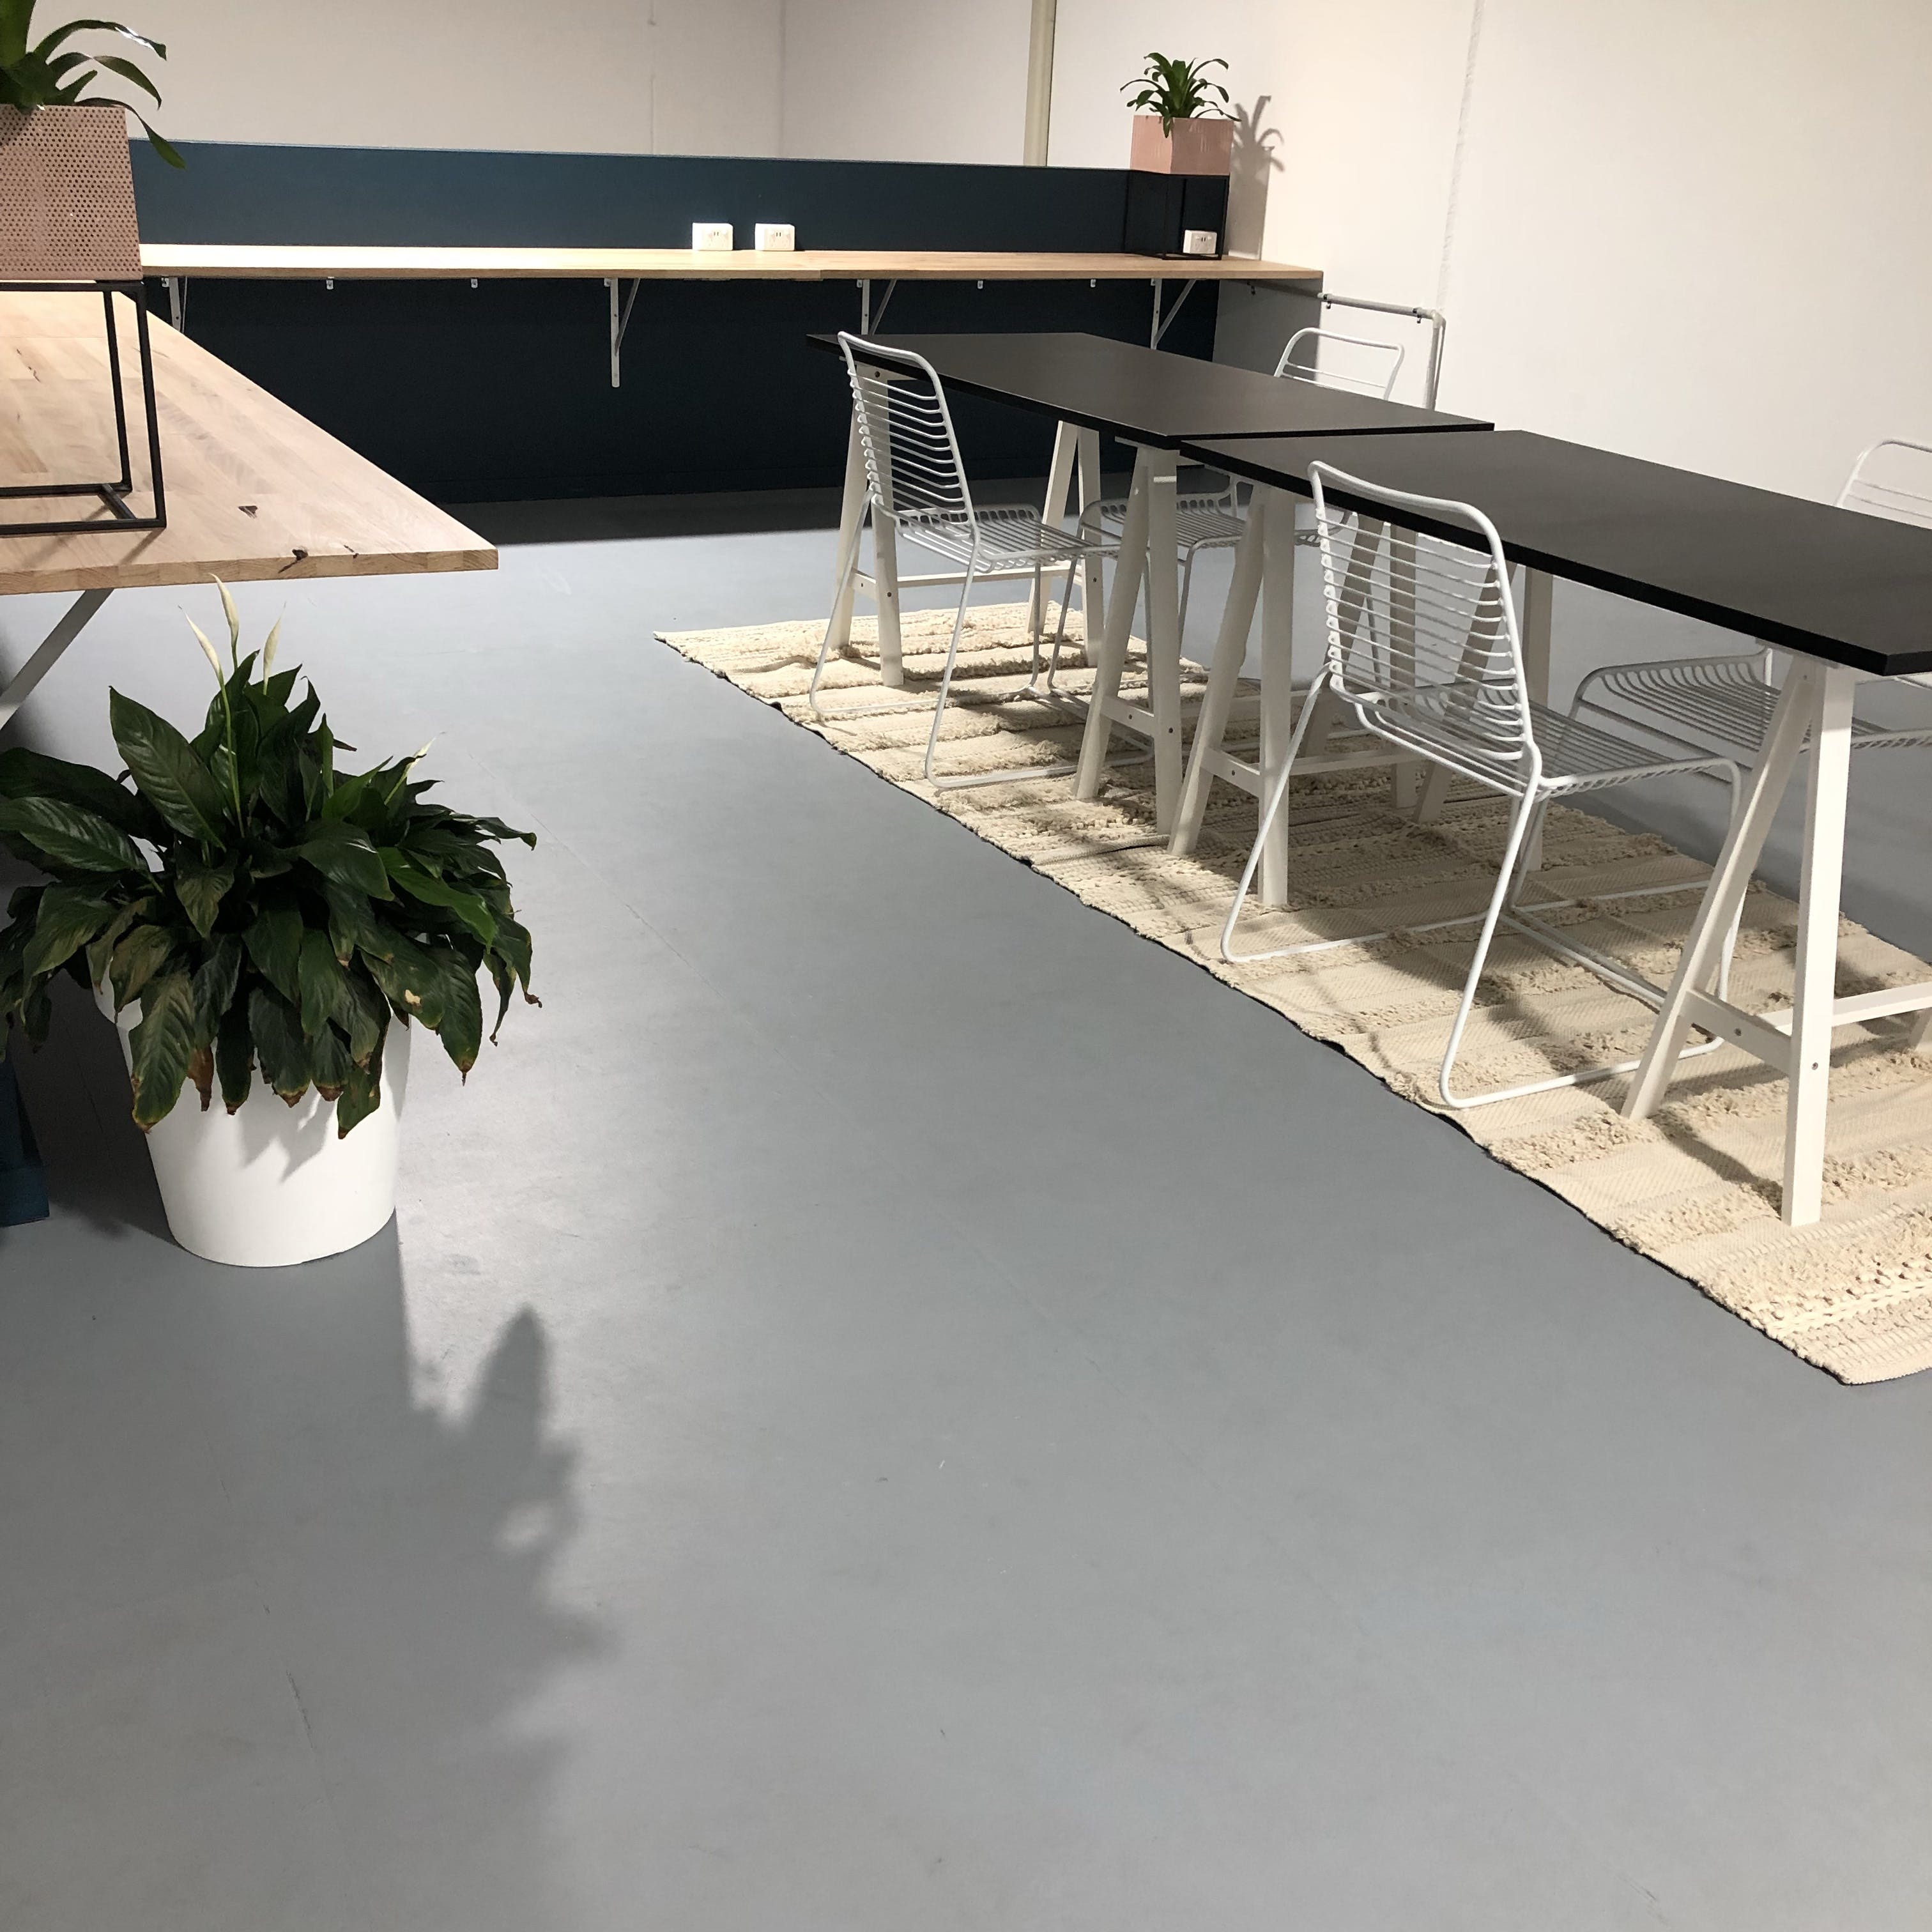 Event Space Weekend Half Day 9-1 Saturday OR Sunday, multi-use area at Bridge Coworking Meeting and Event Space Geelong, image 1